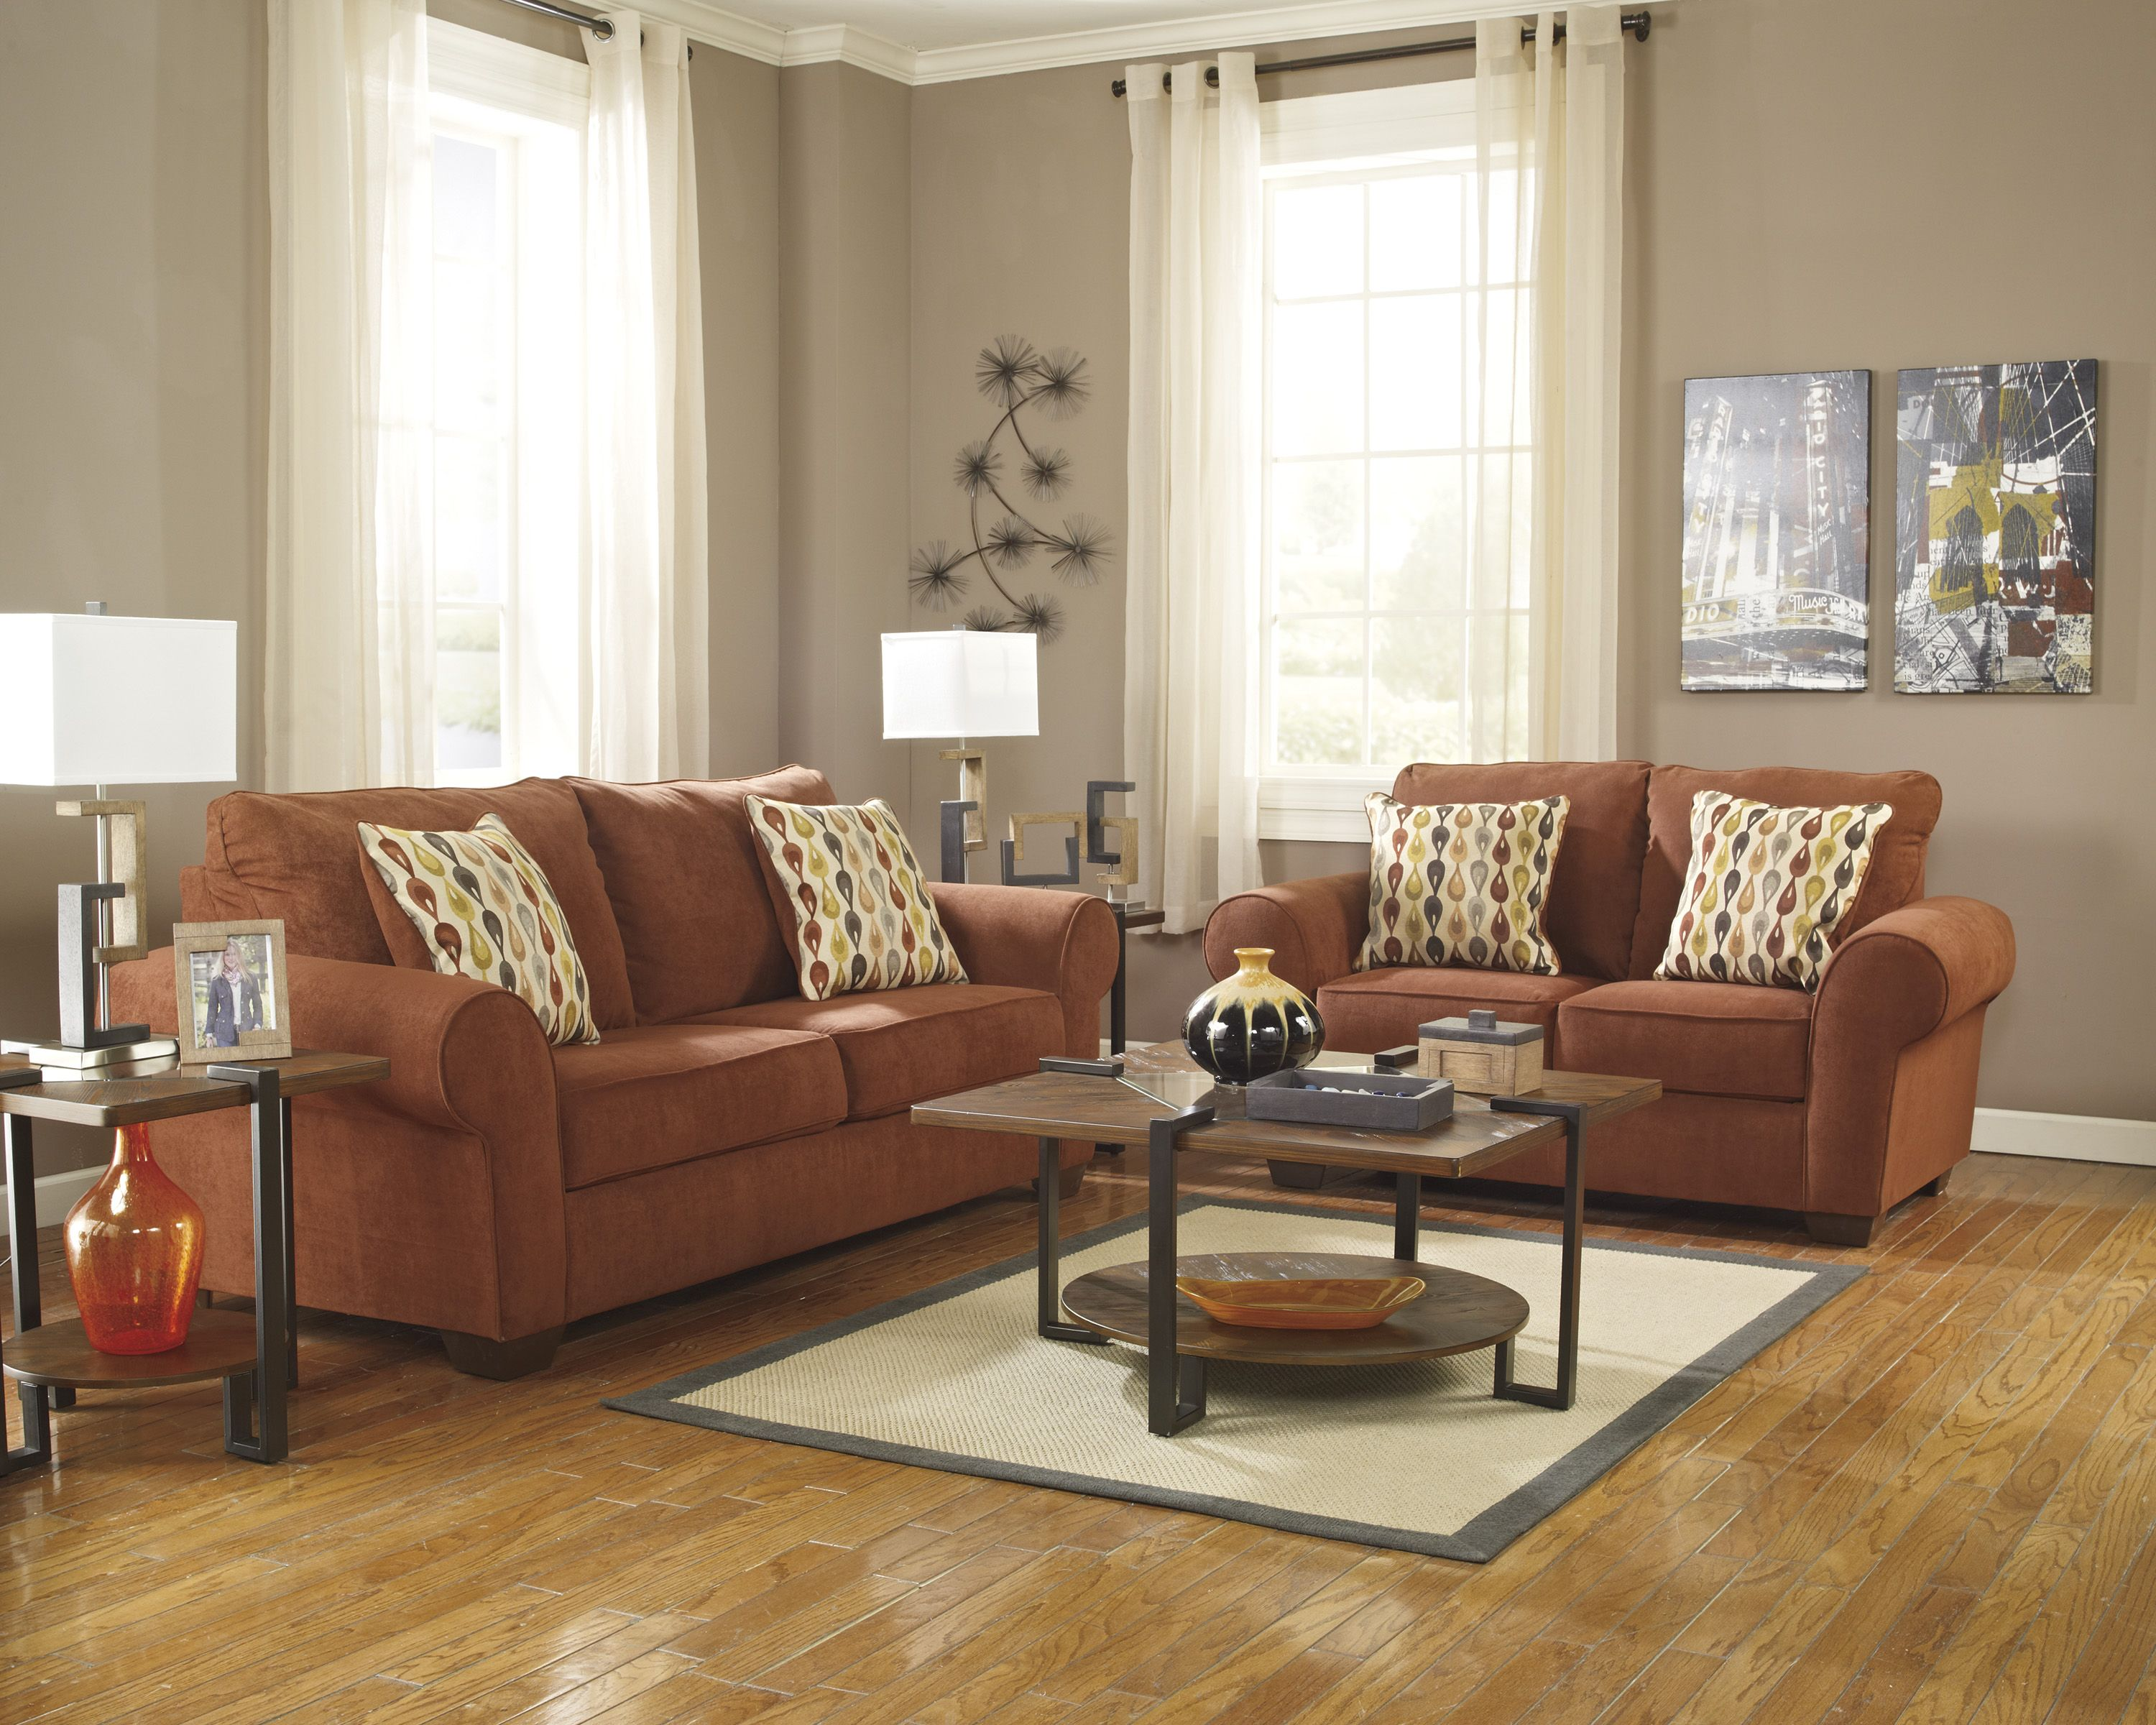 Terracotta Orange Colors And Matching Interior Design Color Schemes -